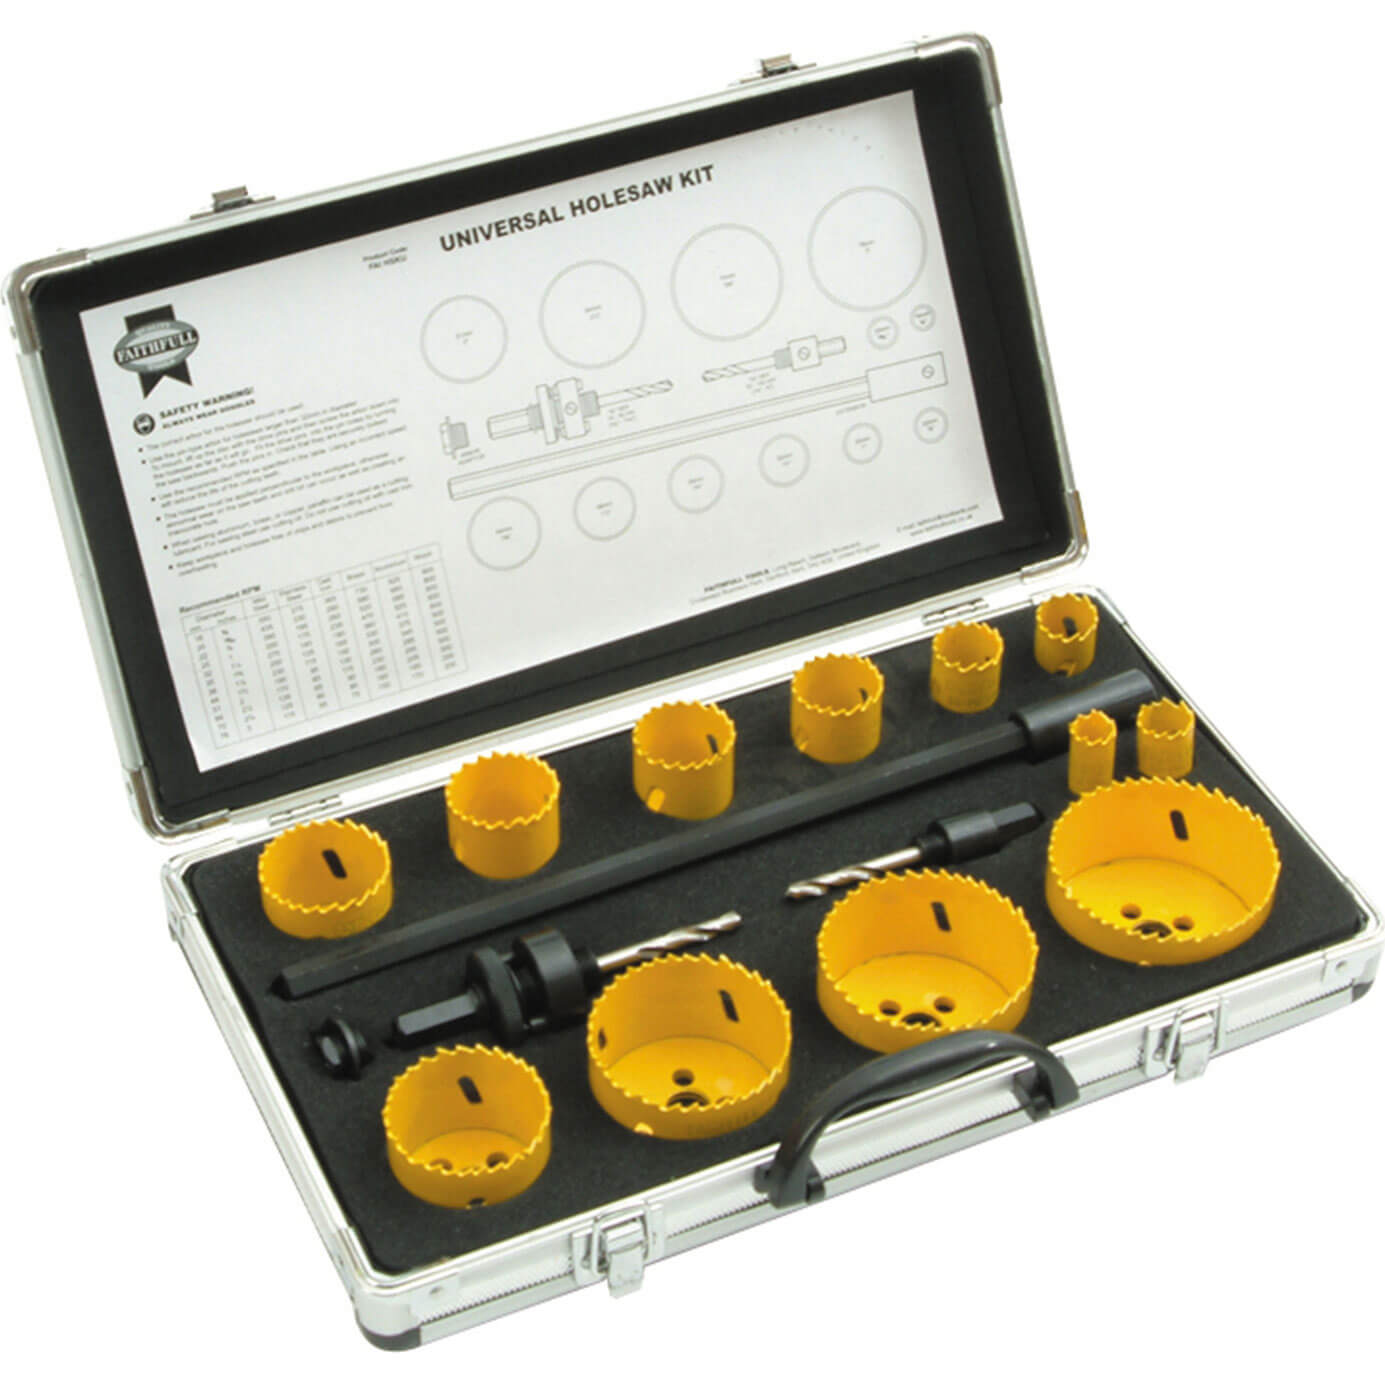 Image of Faithfull 16 Piece Universal Hole Saw Kit